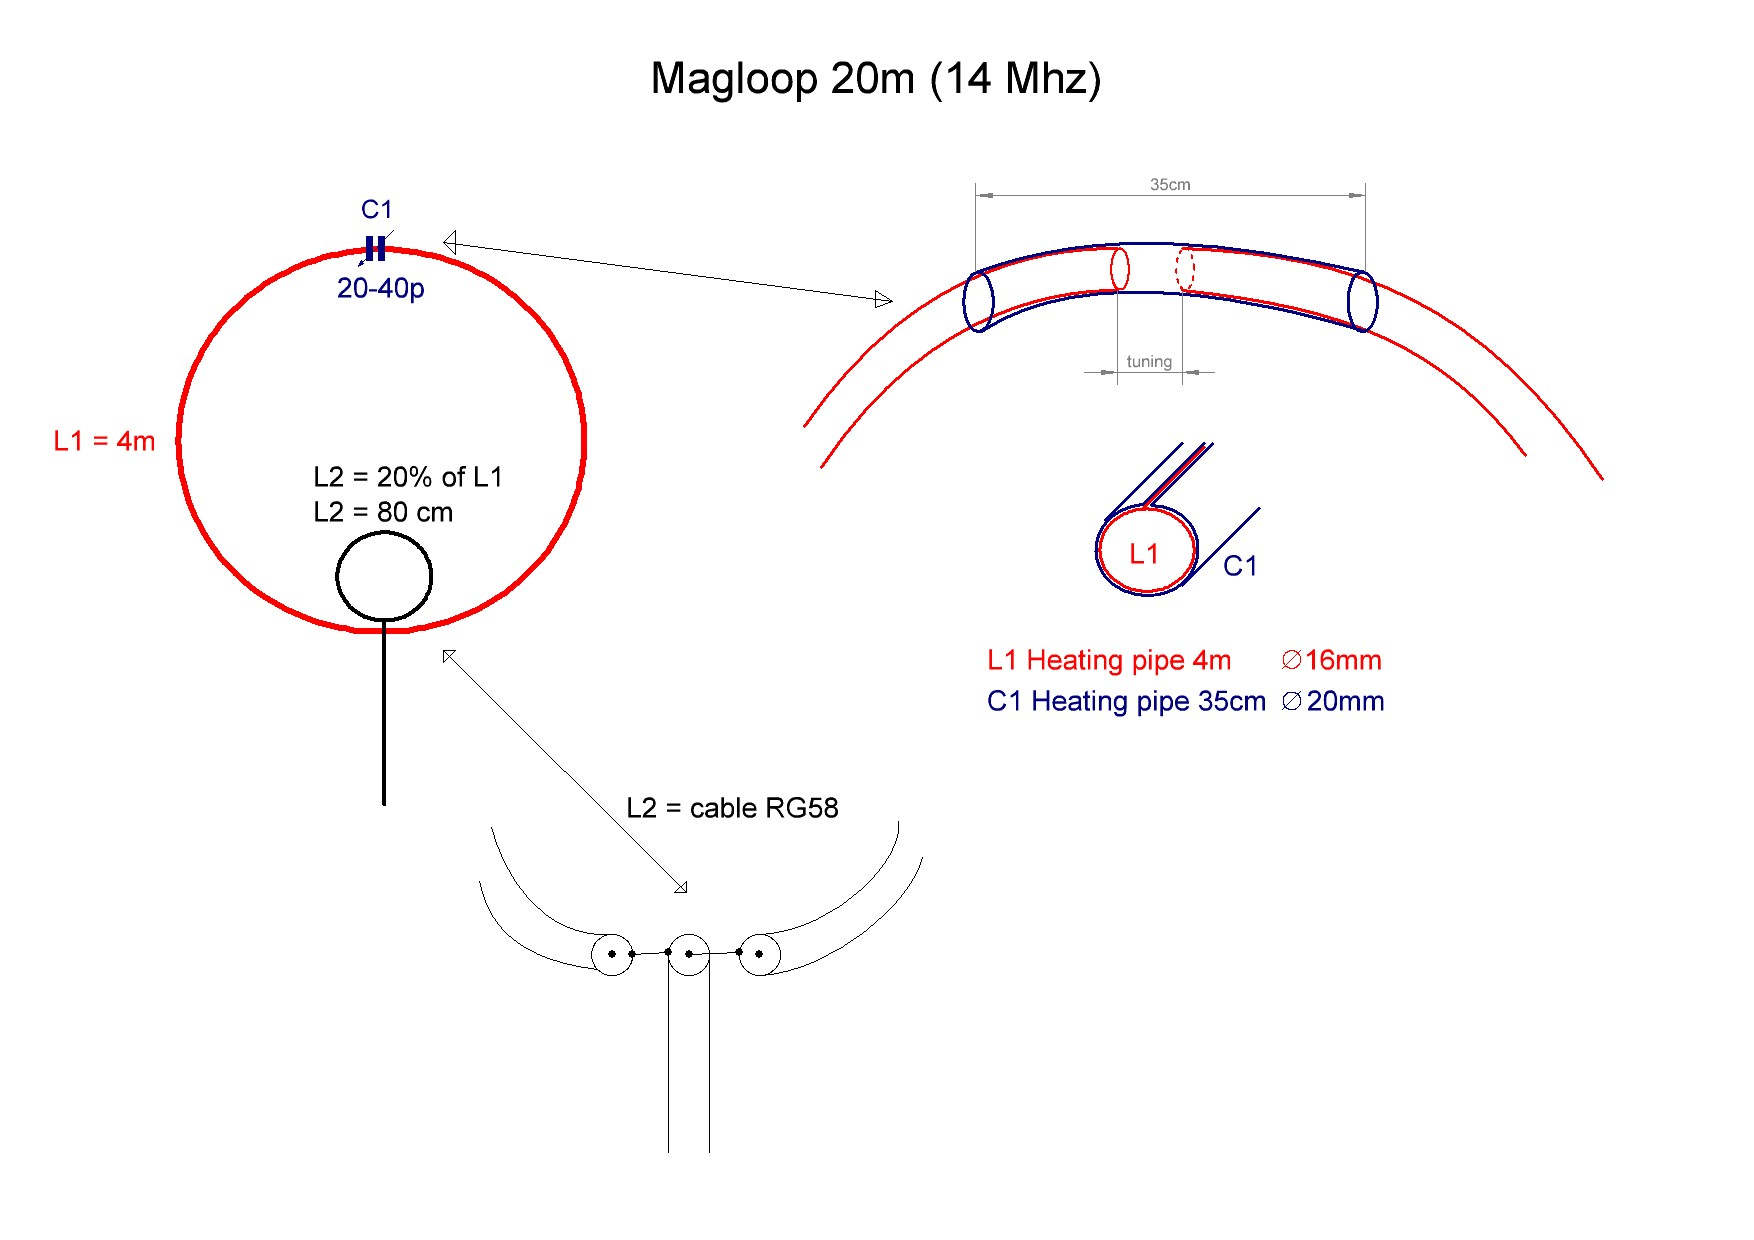 Magloop antenna for 20m